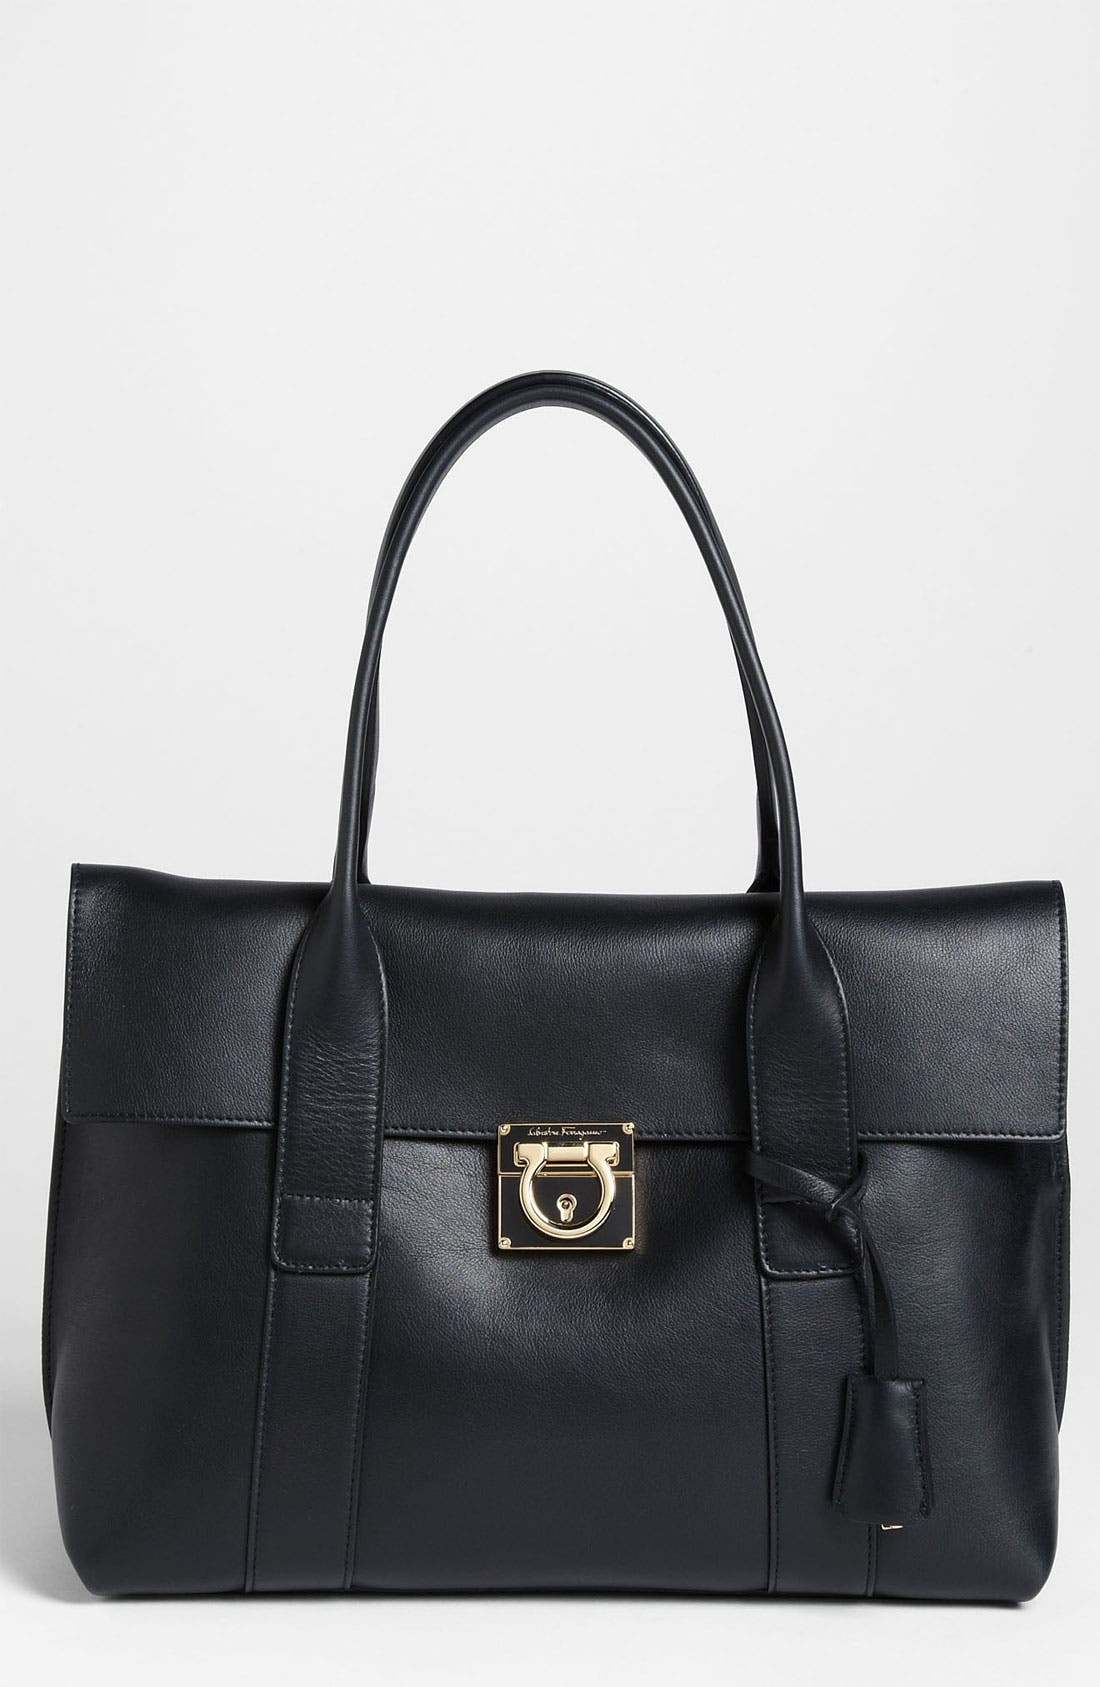 Alternate Image 1 Selected - Salvatore Ferragamo 'Medium Sookie' Leather Satchel